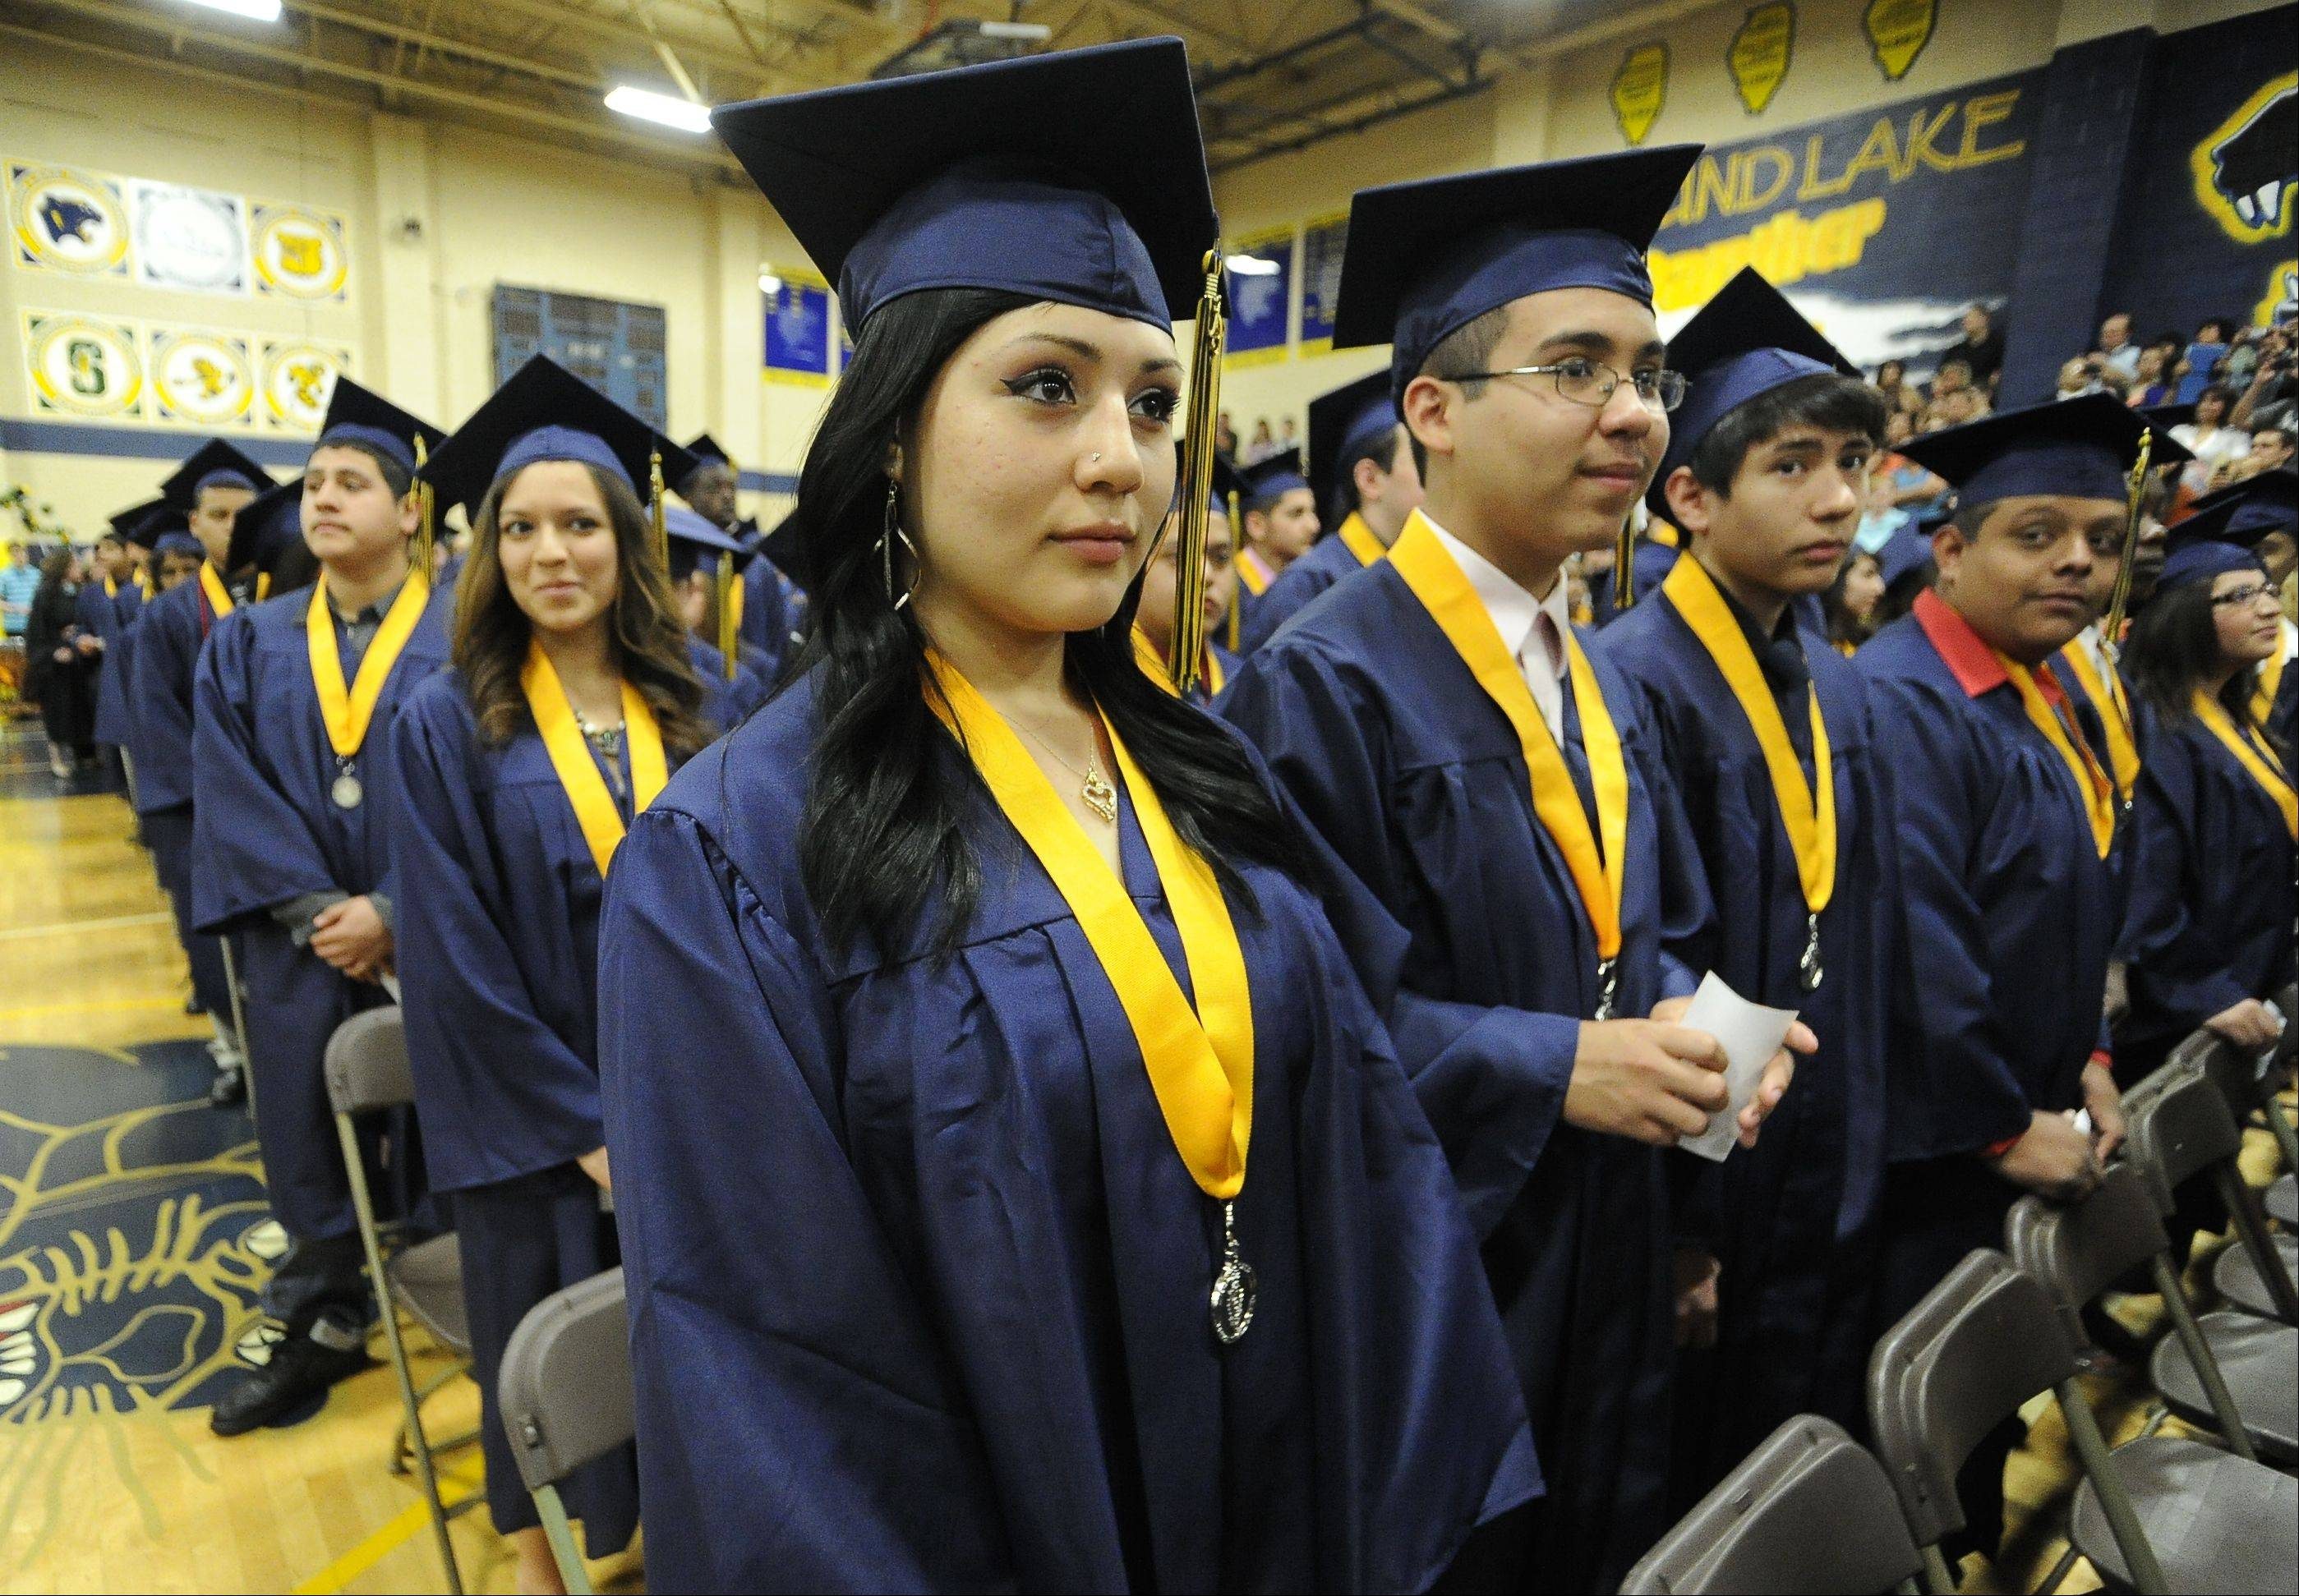 This is graduation day last May at Round Lake Senior High School, which has one of the lowest composite ACT scores of suburban schools. Officials are trying new strategies to improve test scores, including getting students to think about college in middle school.